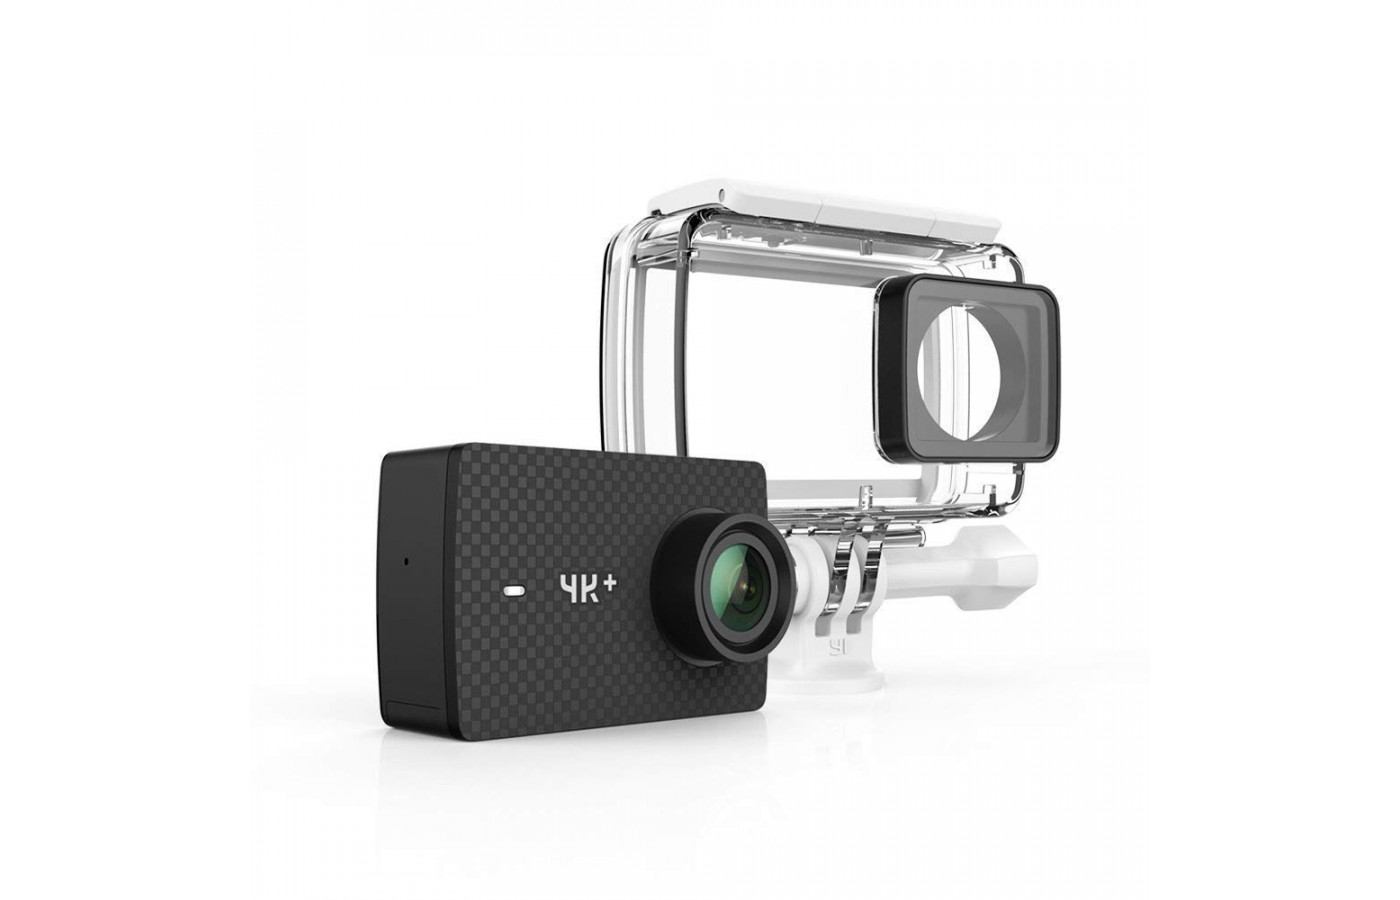 The YI 4K+ comes with a waterproof case for protection when in the snow.